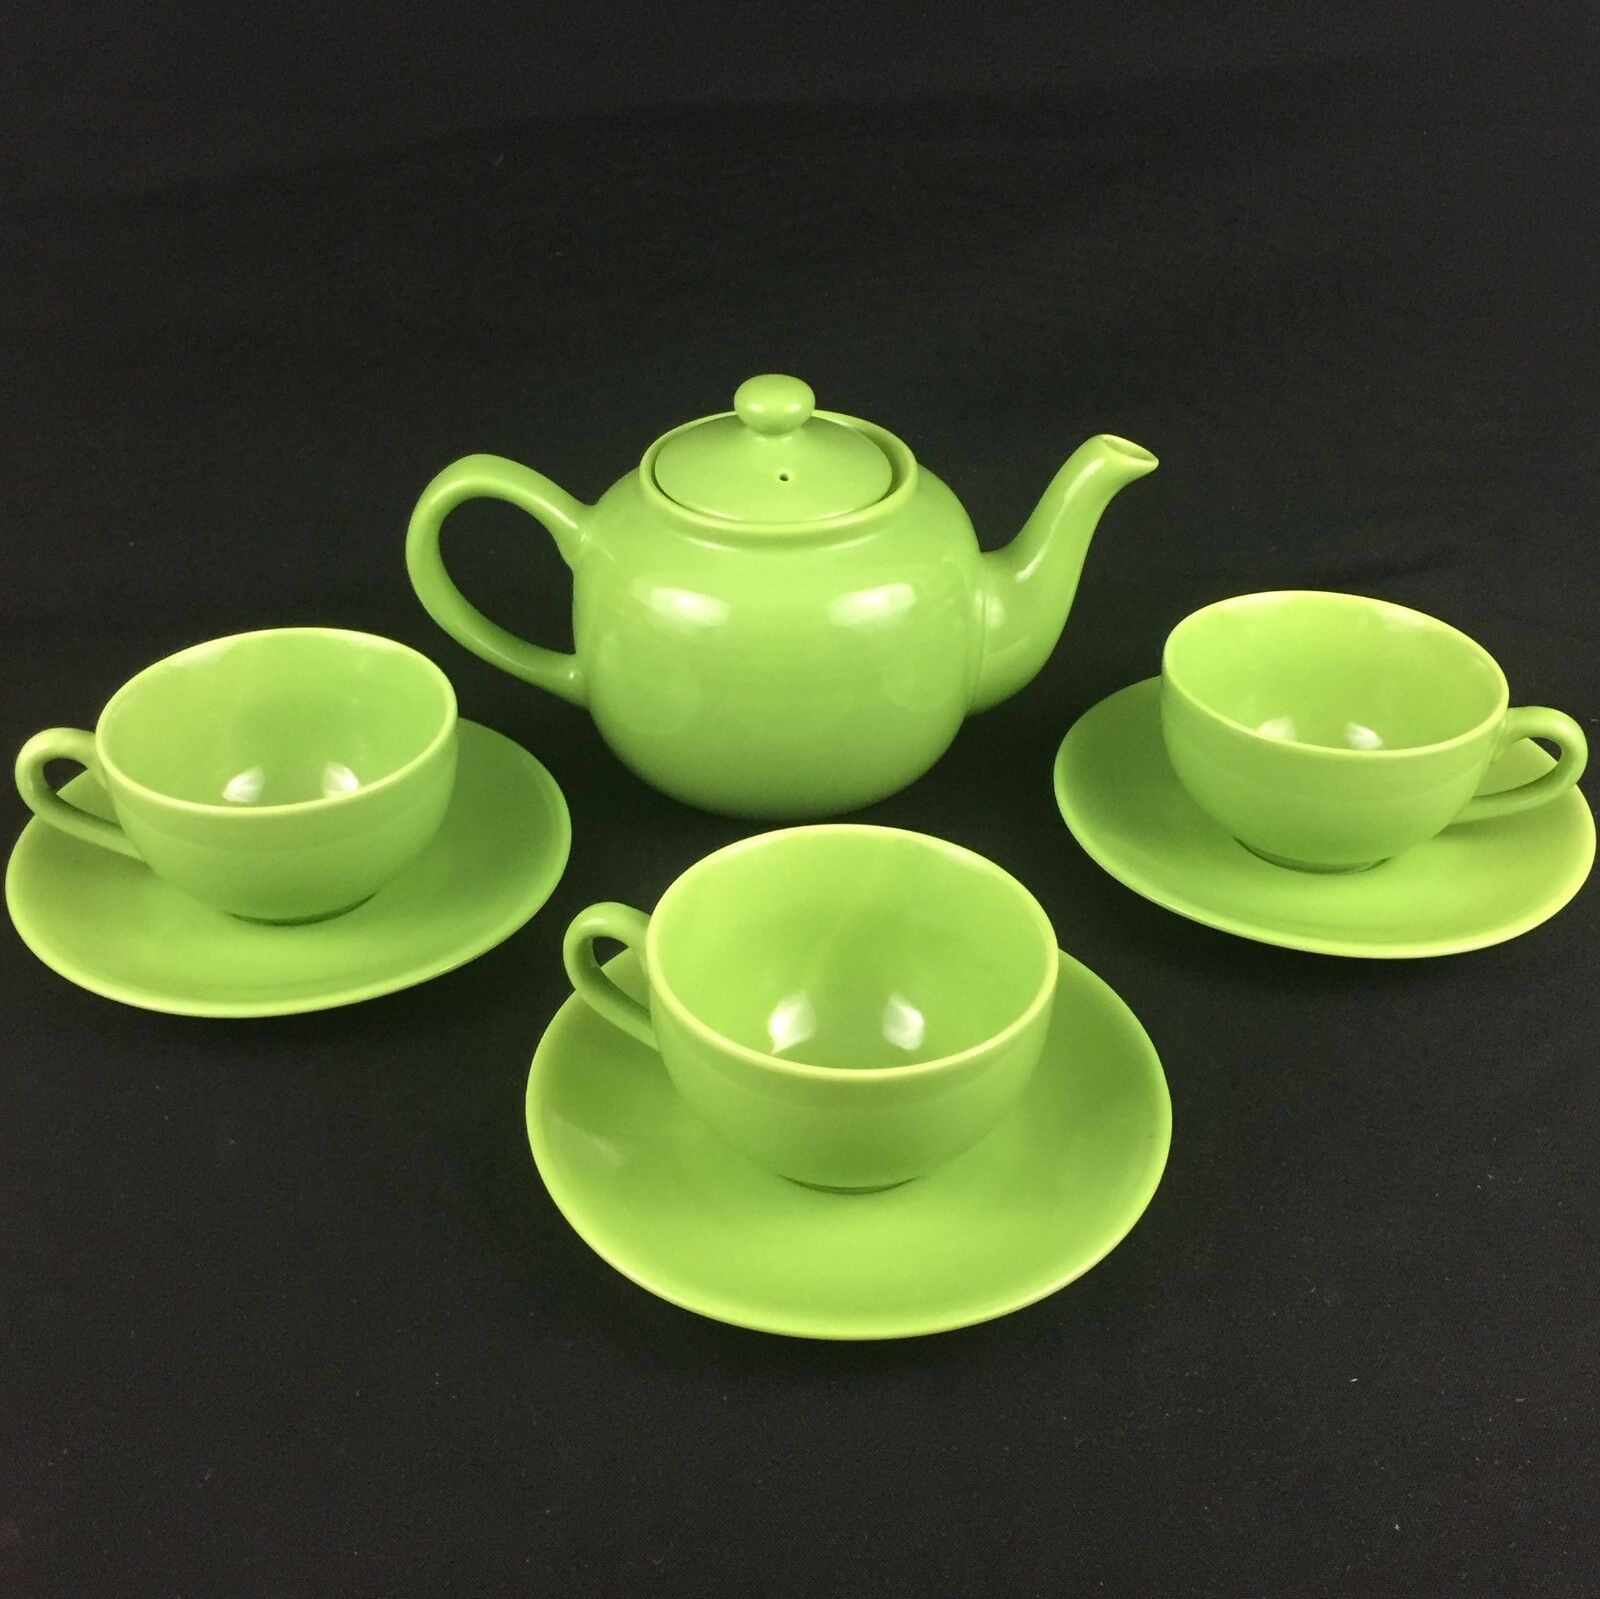 VTG Old Amsterdam Porcelain Works 1701 Bright Green Teapot 3 Cups and SaucersTwo